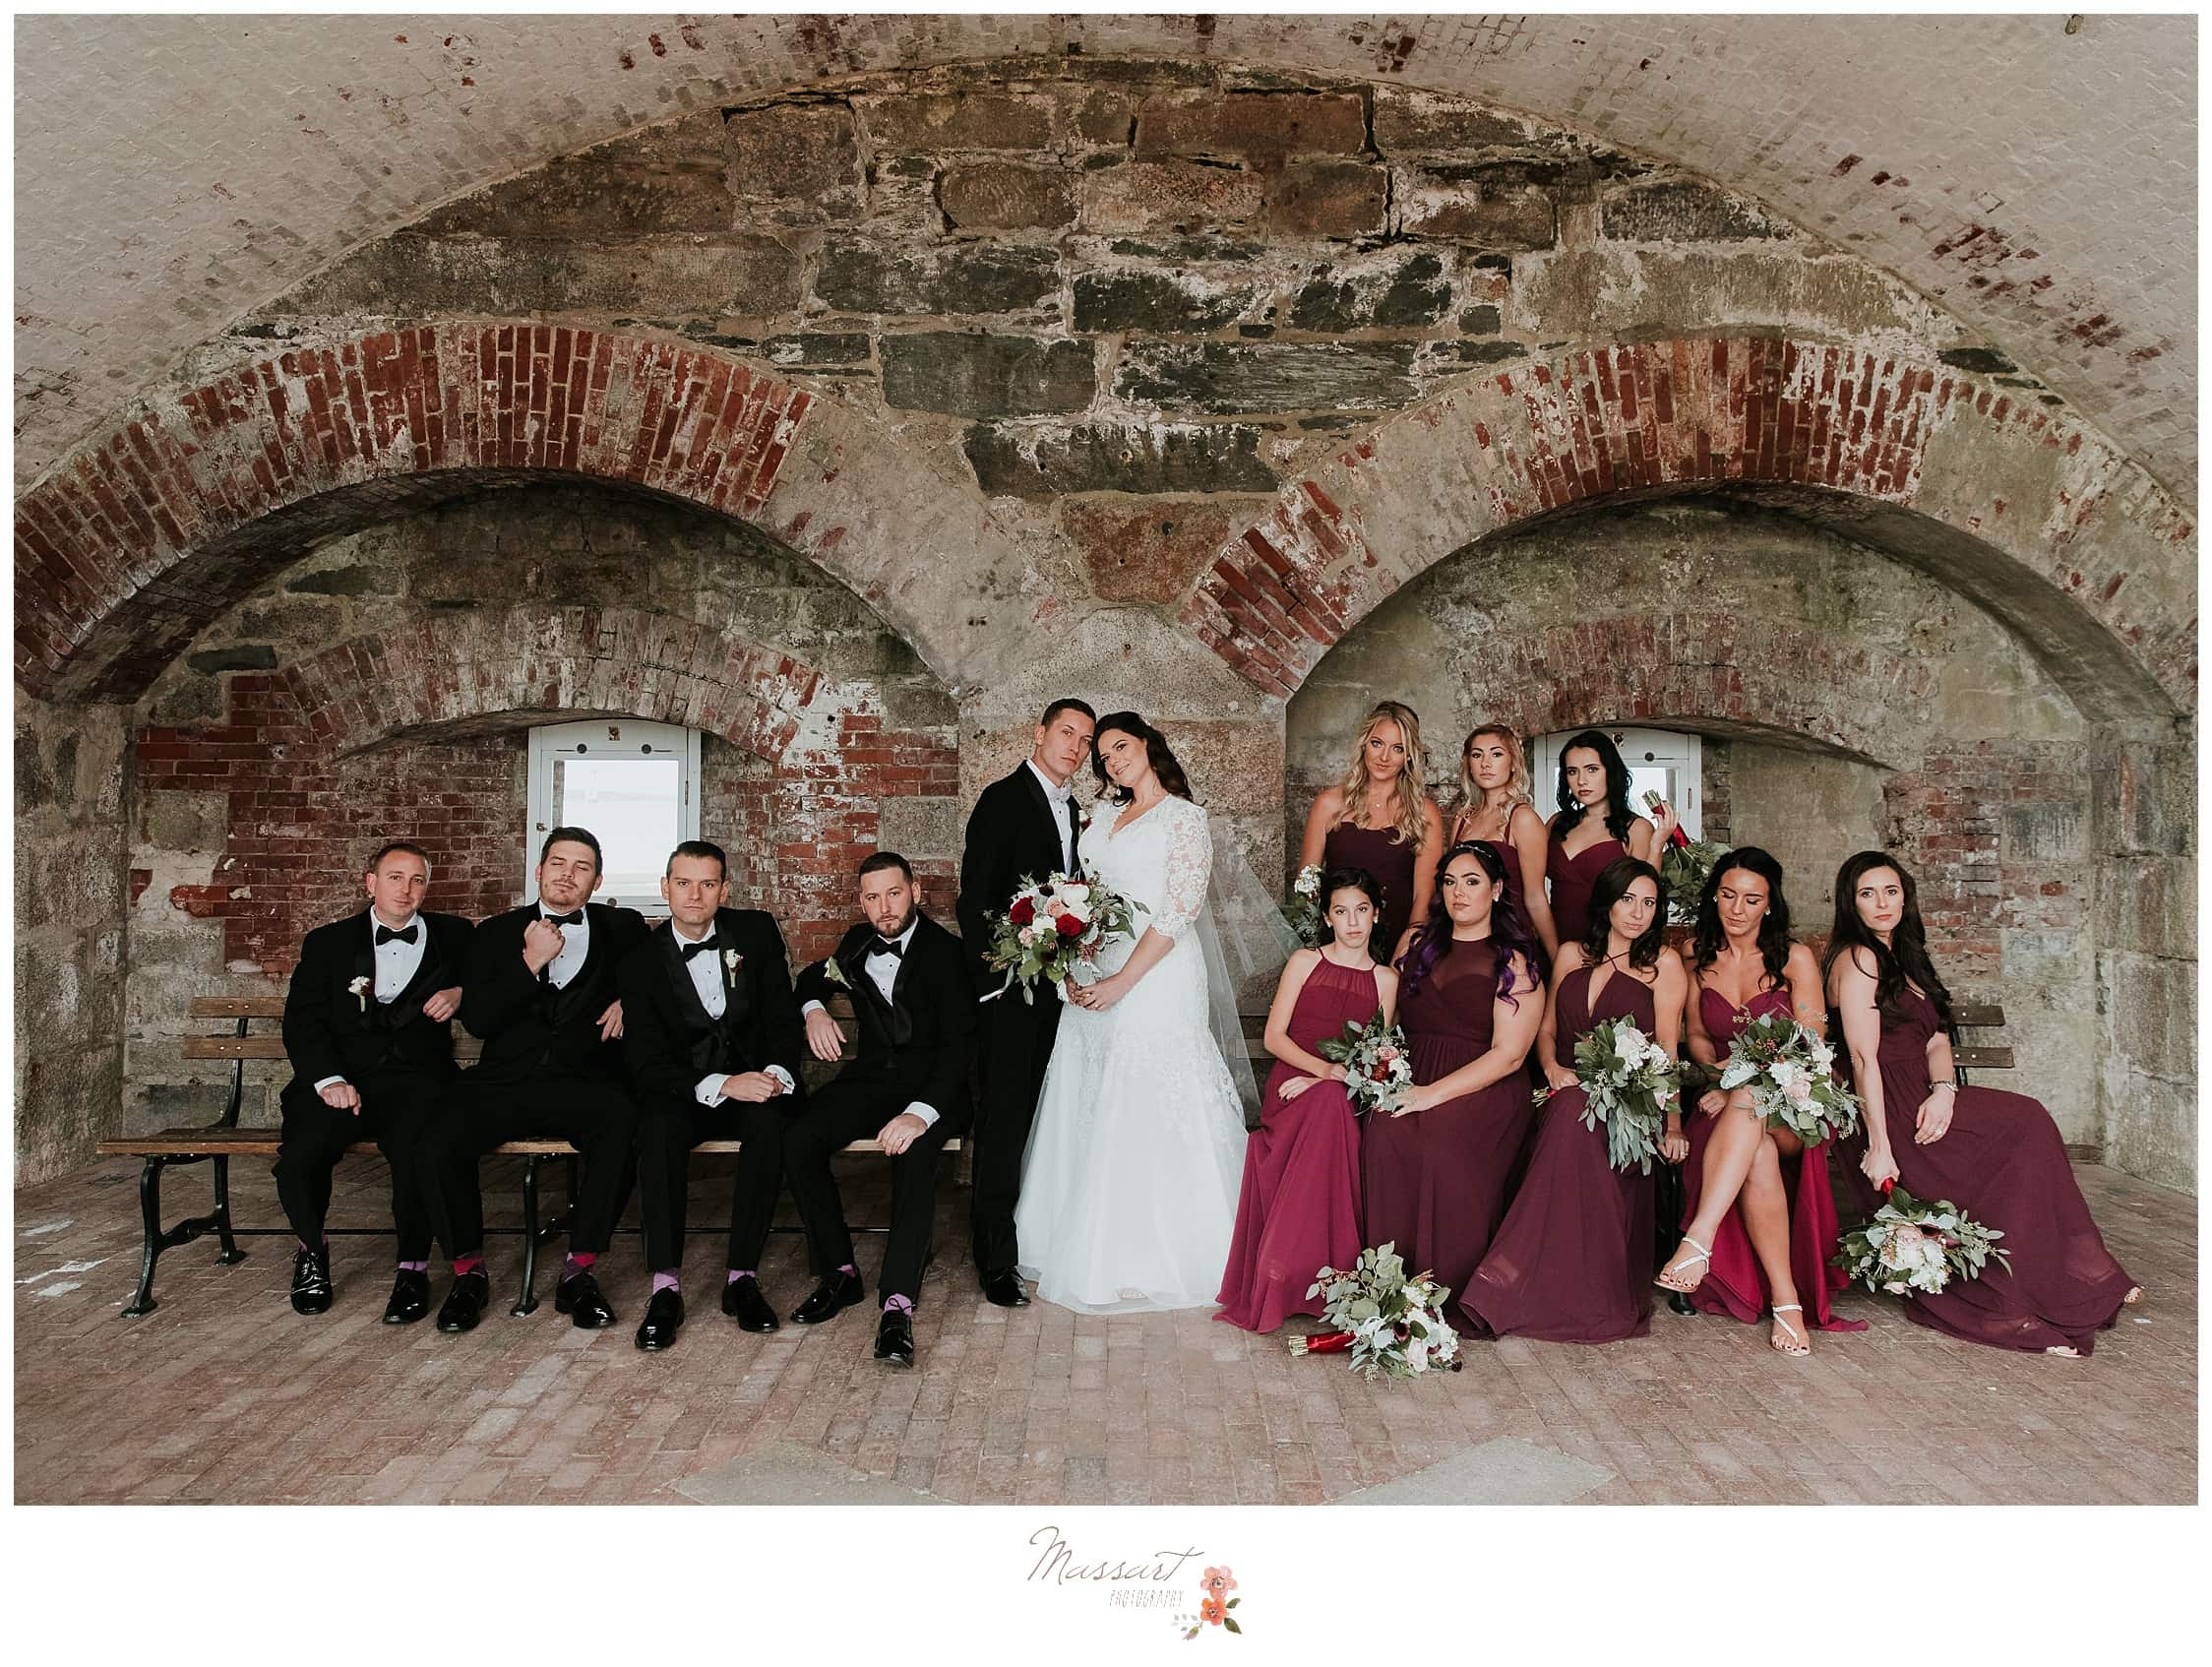 Wedding party formals at fort adams in newport, RI captured by massart photographers